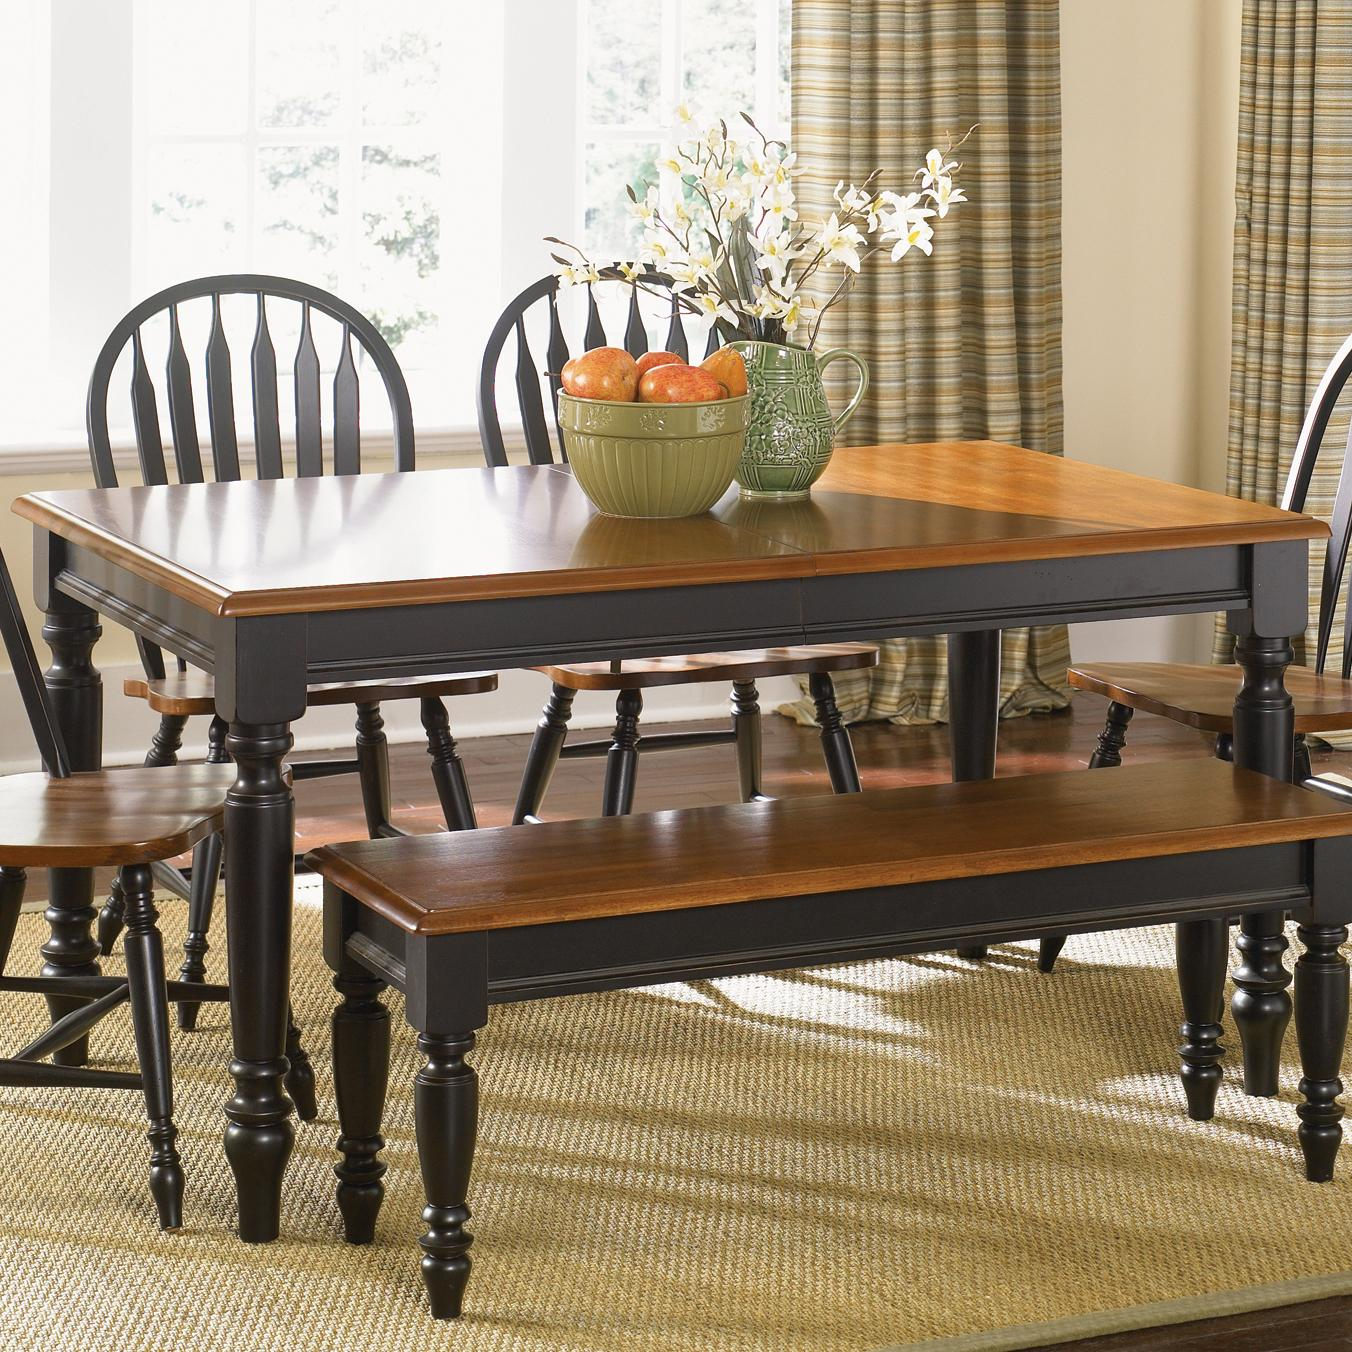 Liberty Furniture Low Country Rectangular Dining Table - Item Number: 80-T3876